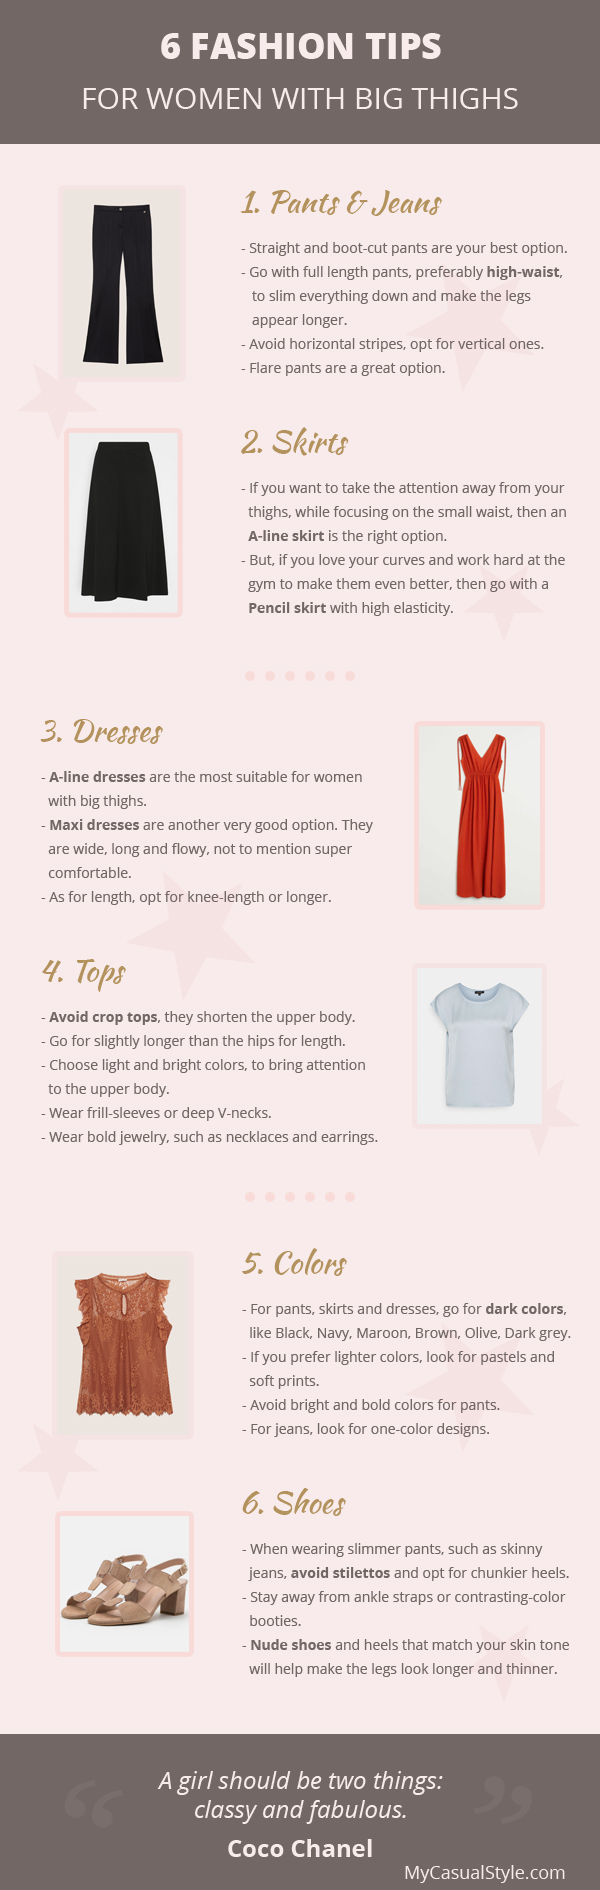 Fashion Tips For Women With Big Thighs - Infographic